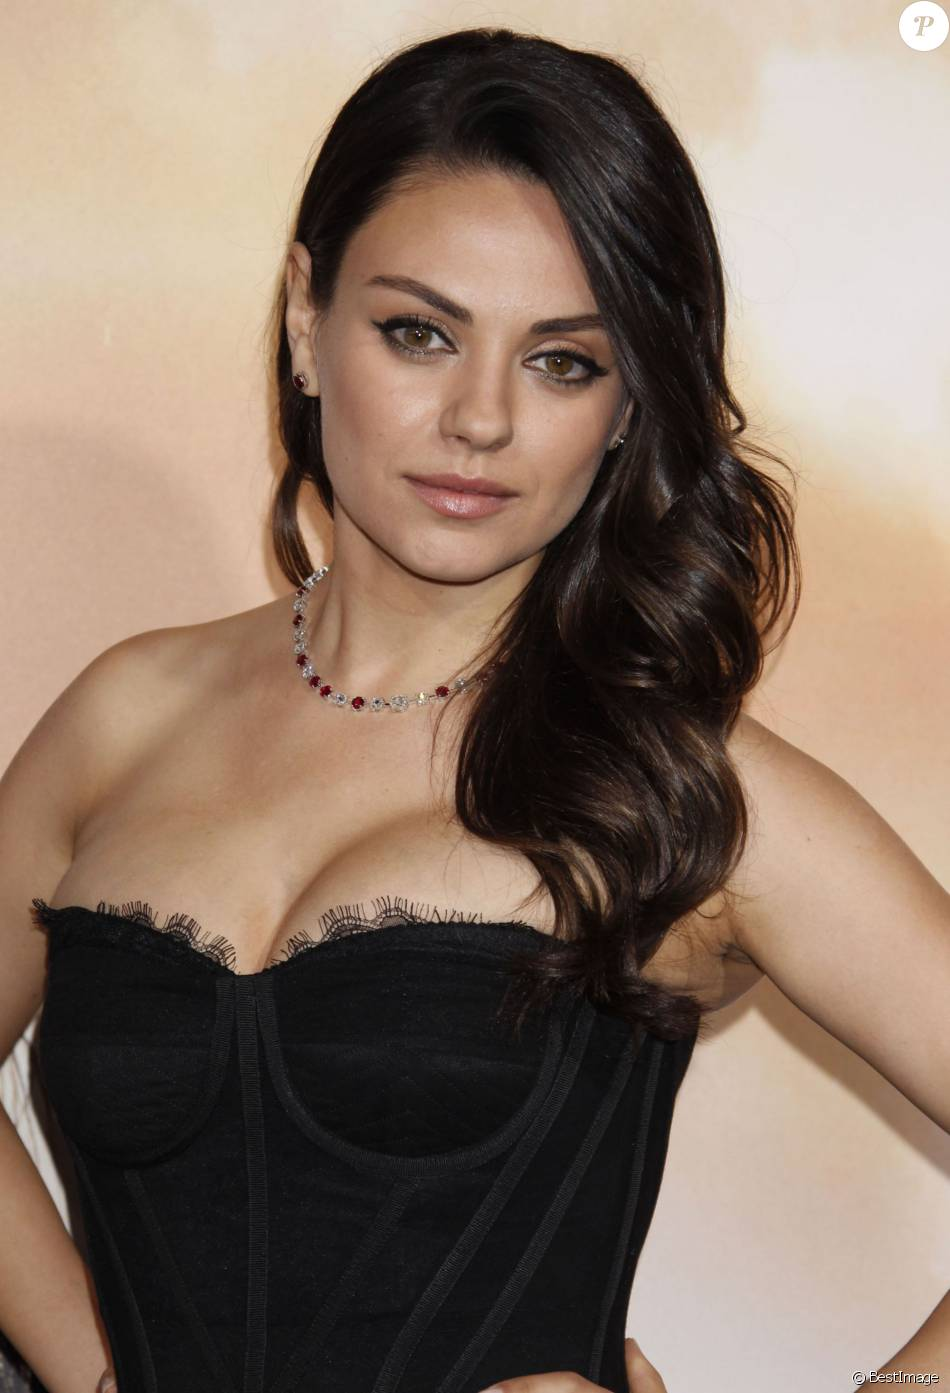 mila kunis la premi re du film jupiter ascending hollywood le 2 f vrier 2015 purepeople. Black Bedroom Furniture Sets. Home Design Ideas